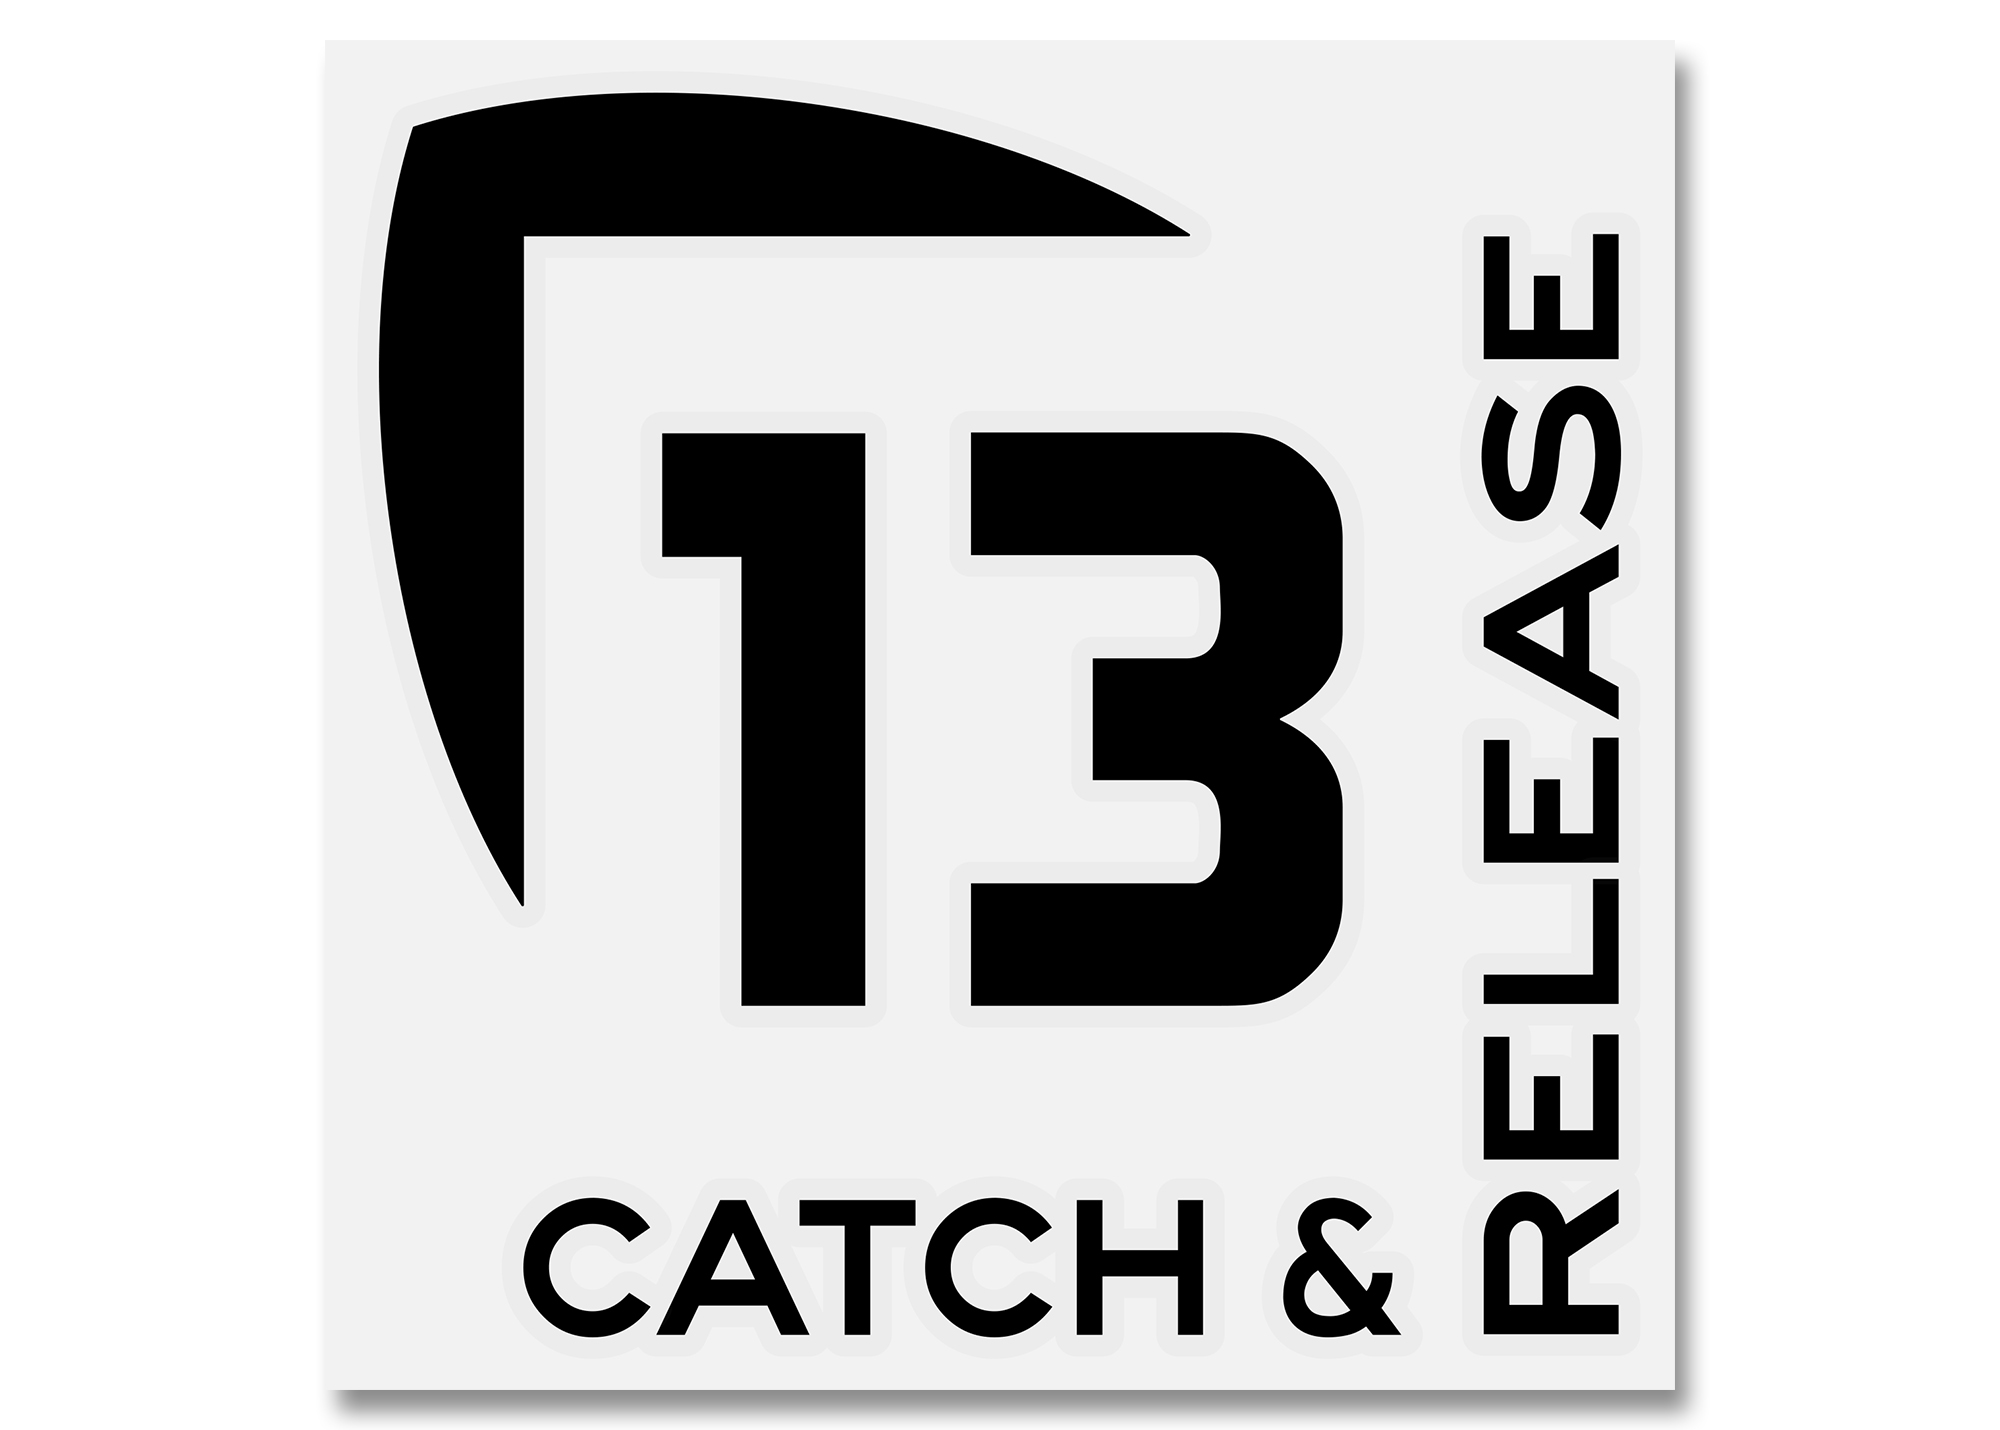 13 Fishing Catch and Release Vinyl Decal - Medium - Black